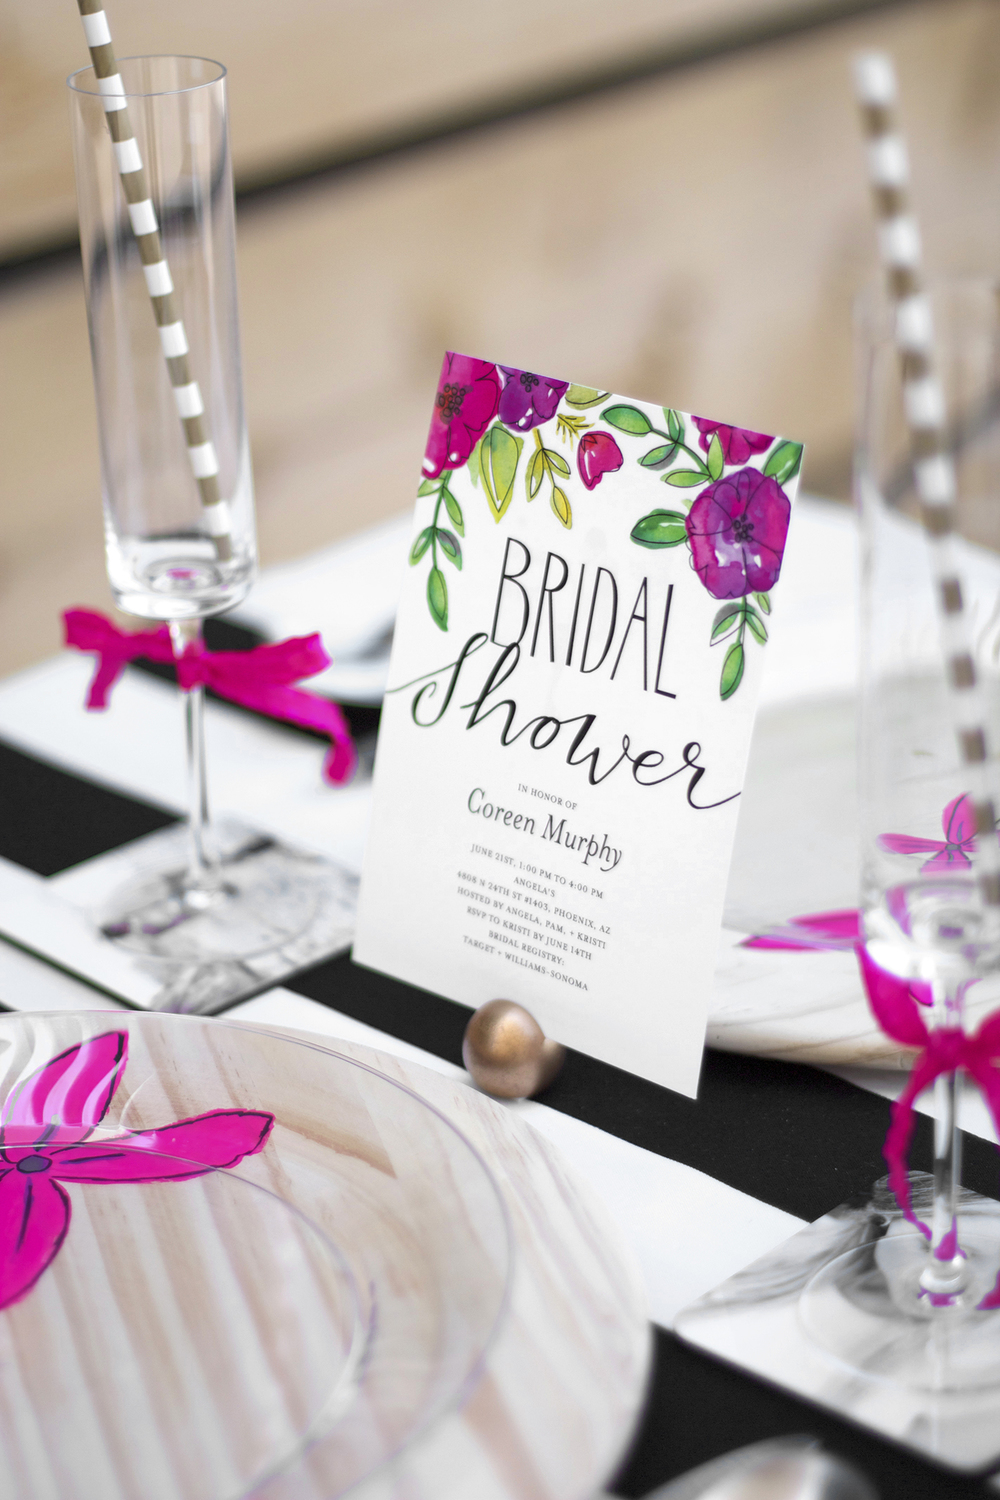 Bridal Shower Table Ideas & Garden Party Bridal Shower u2014 Kristi Murphy | DIY Blog